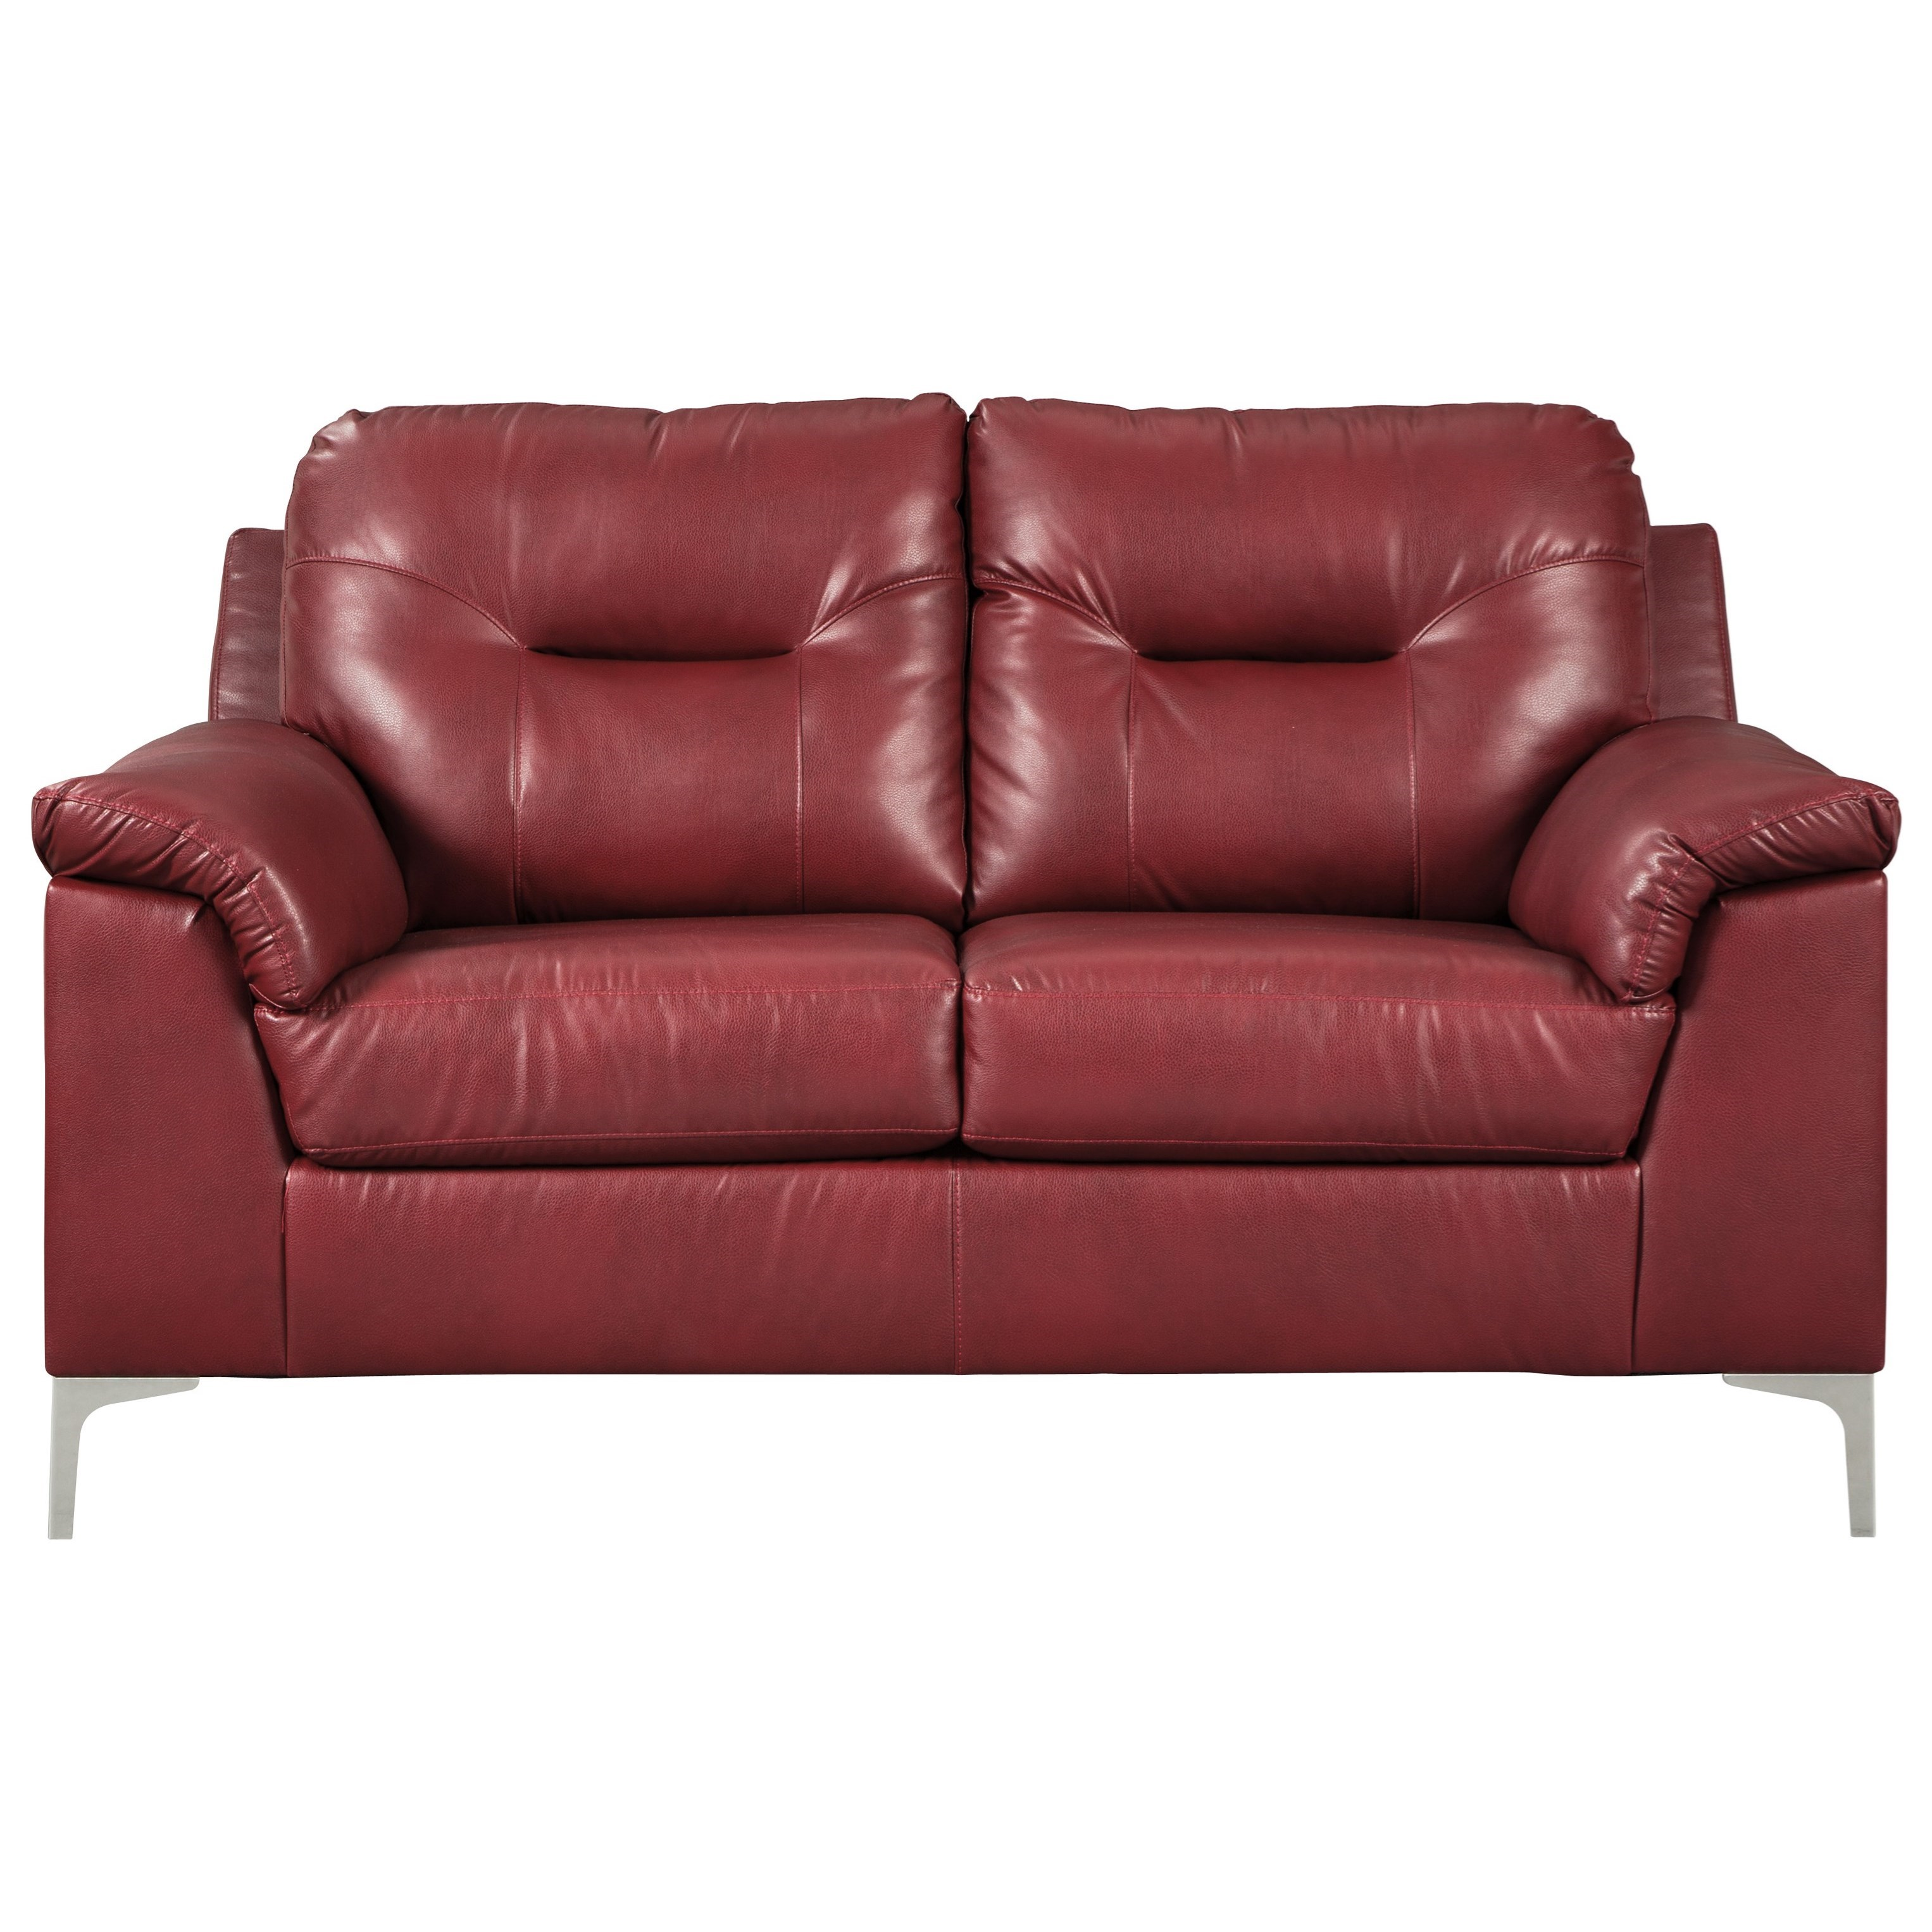 Signature Design by Ashley Tensas Loveseat - Item Number: 3960335